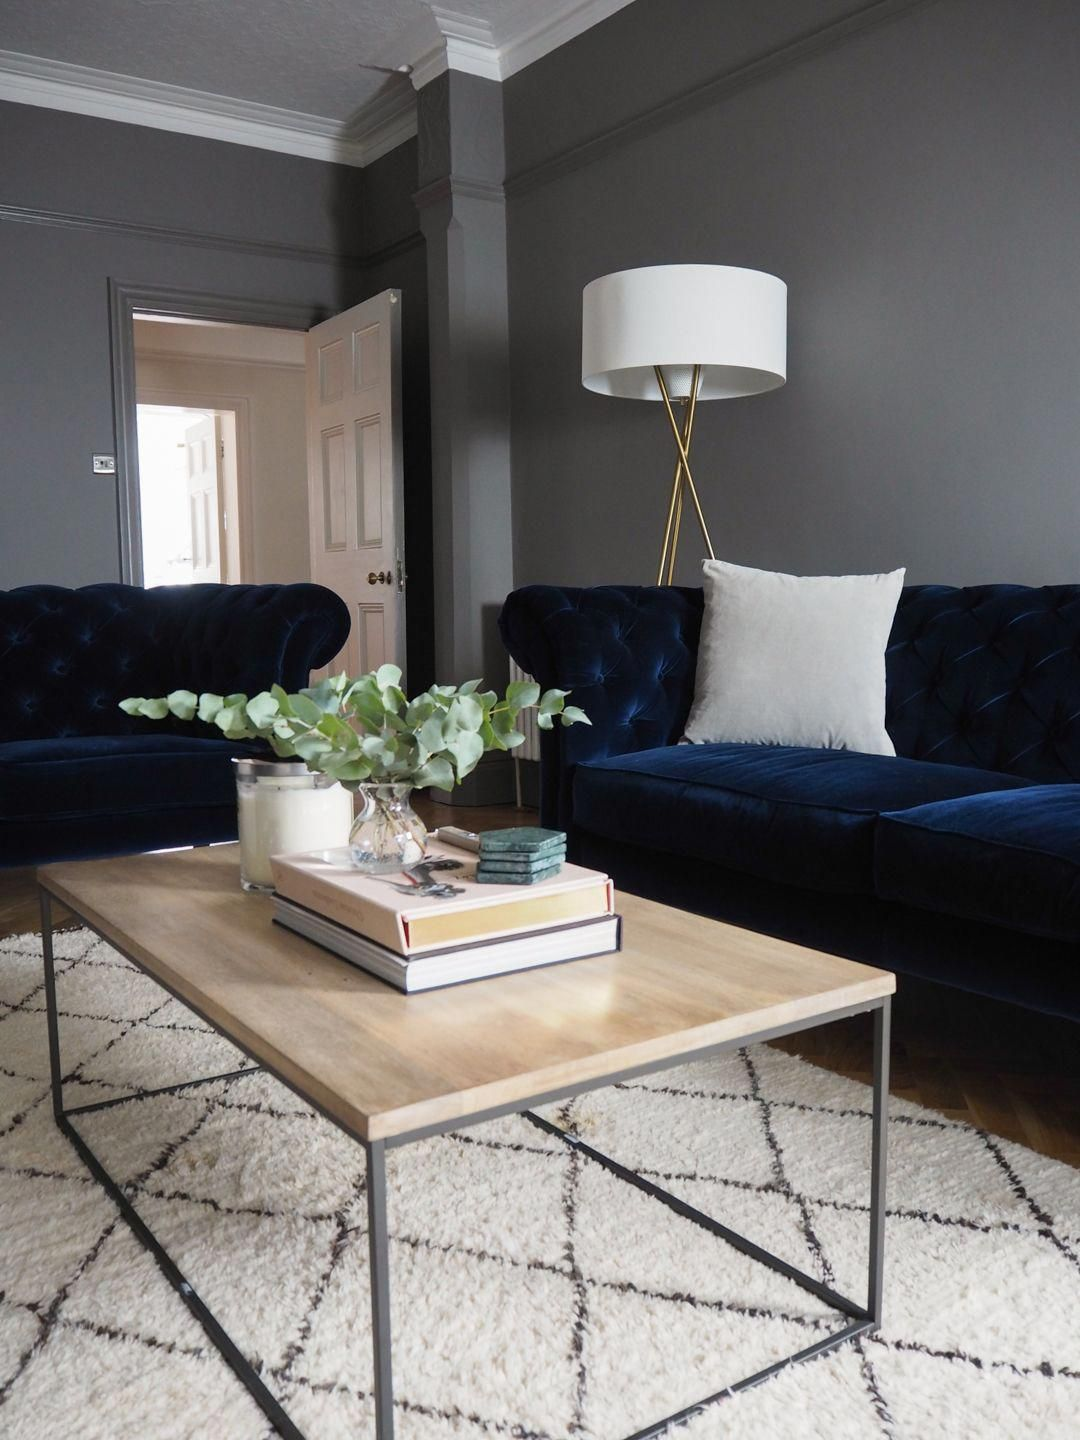 Our Living Room Adding The Final Touches With West Elm Dark Grey Walls Blue Velvet Sof Grey Walls Living Room Blue Sofas Living Room Blue Living Room Decor